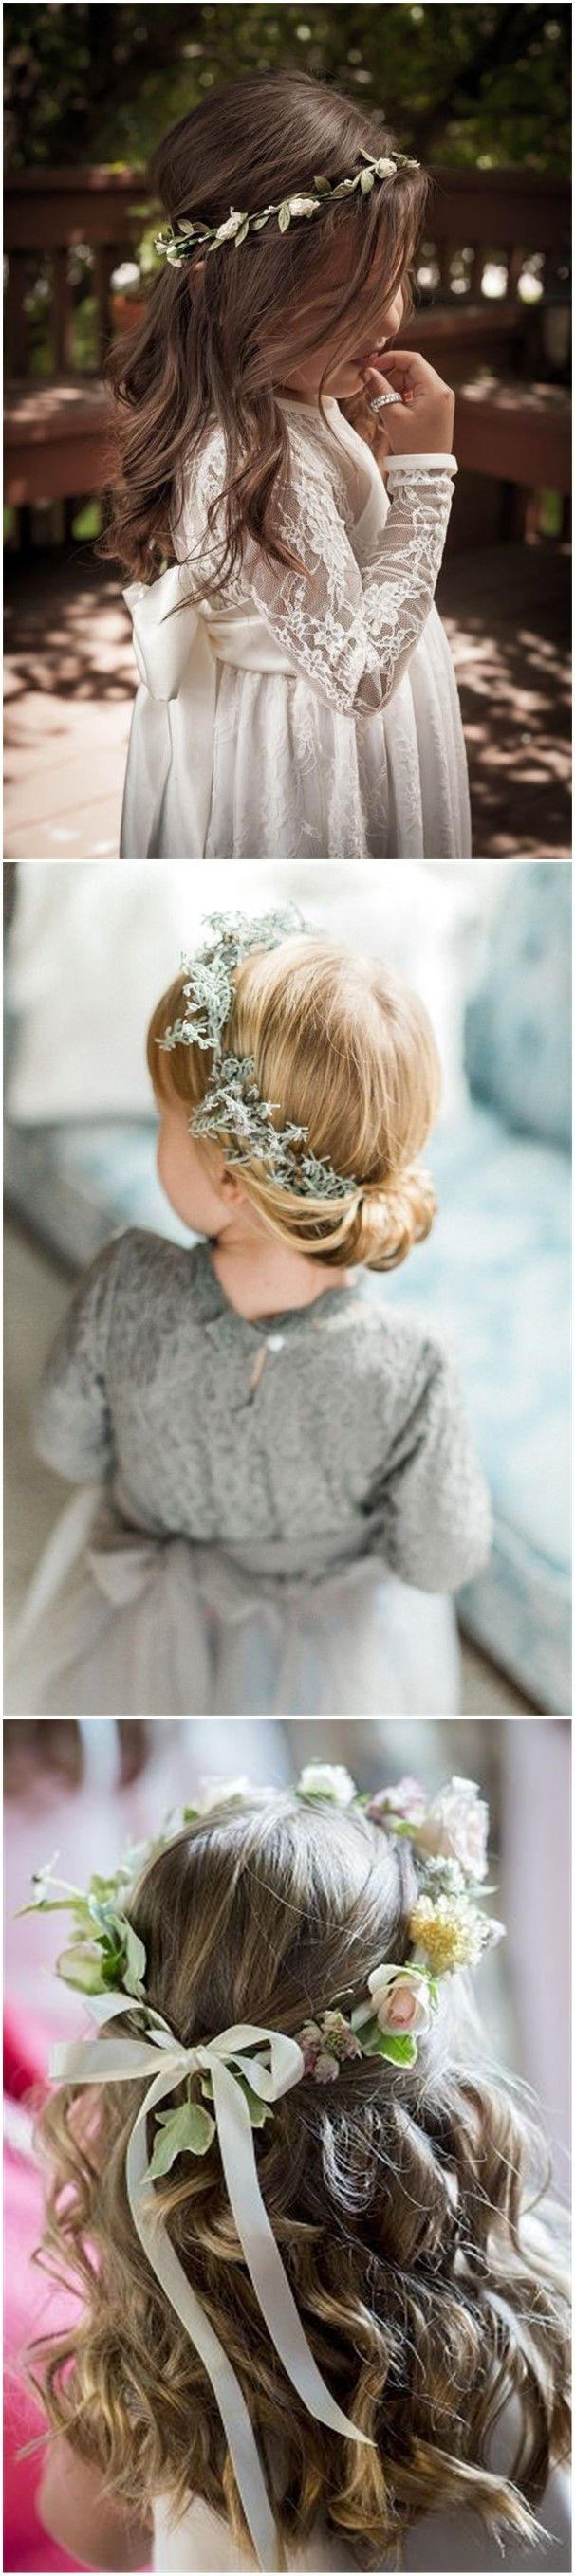 Flower Girl Hairstyles Interesting 22 Adorable Flower Girl Hairstyles To Get Inspired  Pinterest